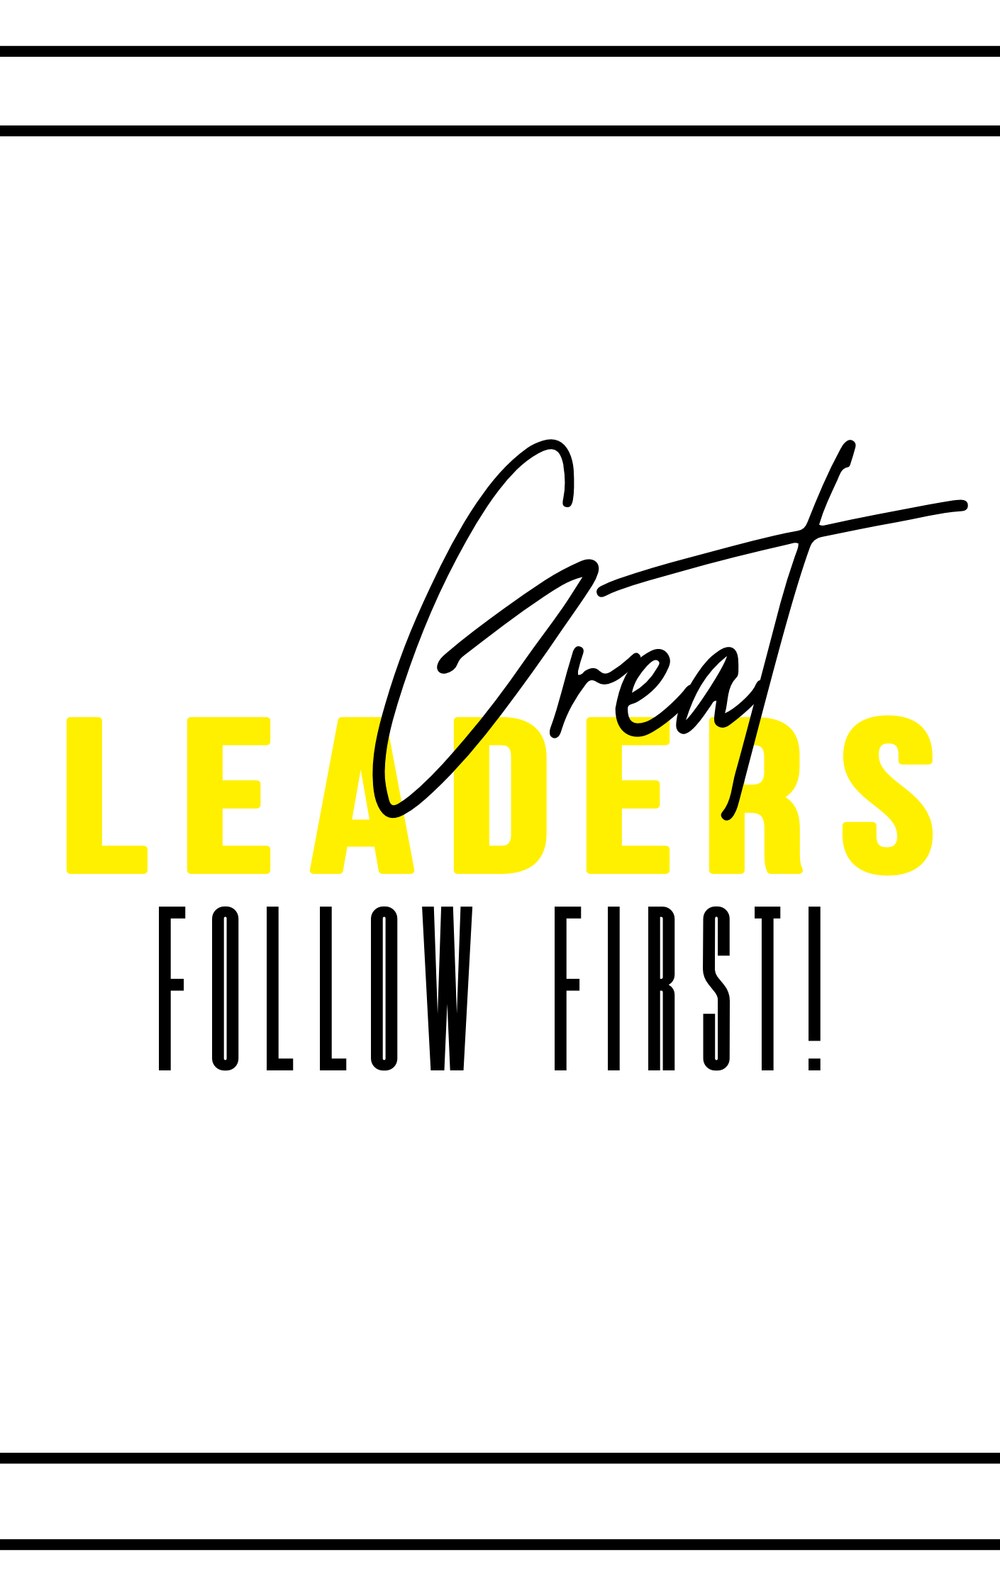 Great Leader Follow First